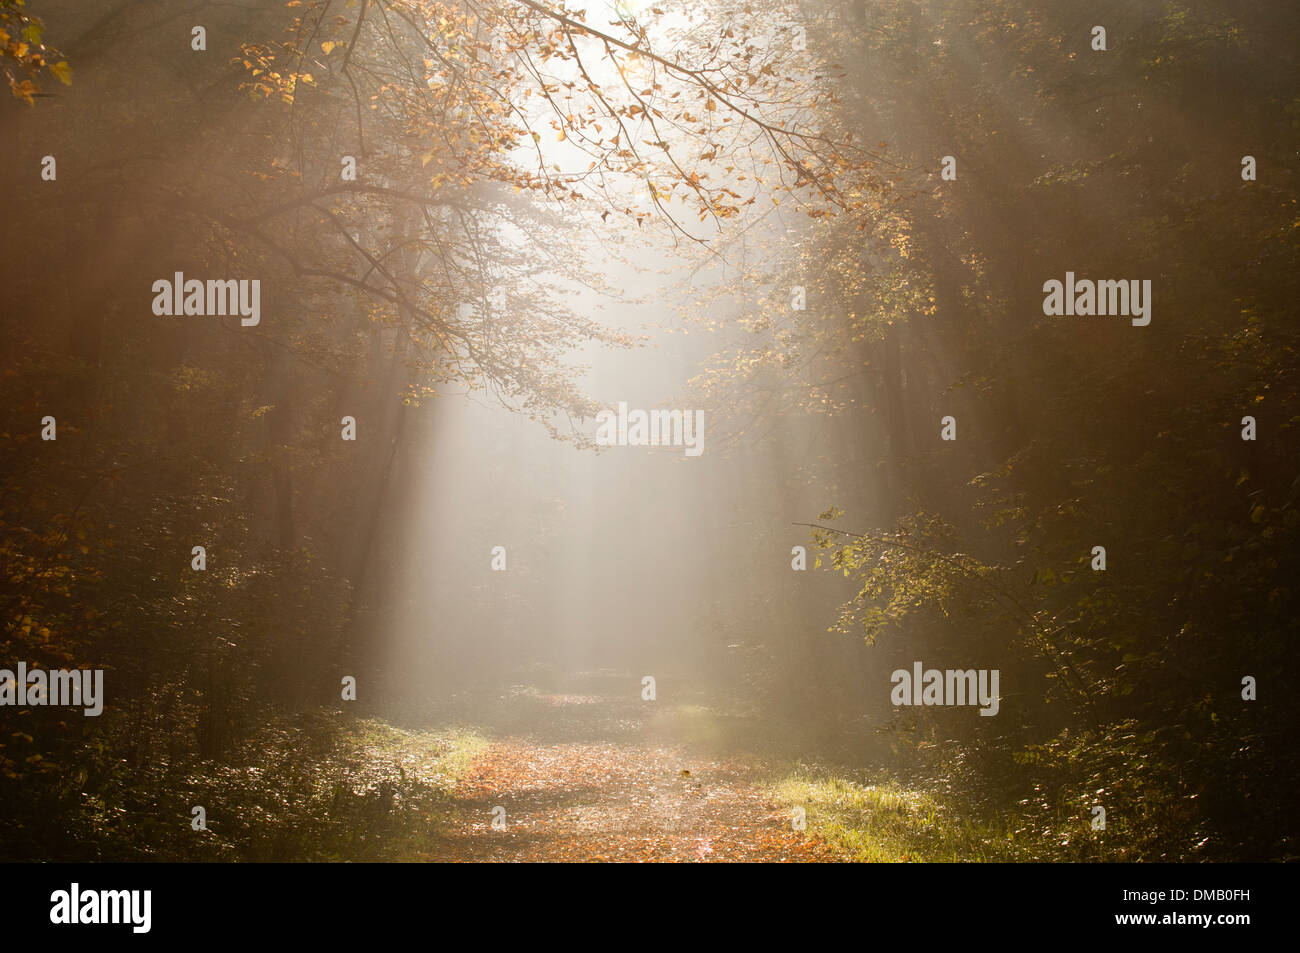 Sun rays in an autumnal forest - Stock Image